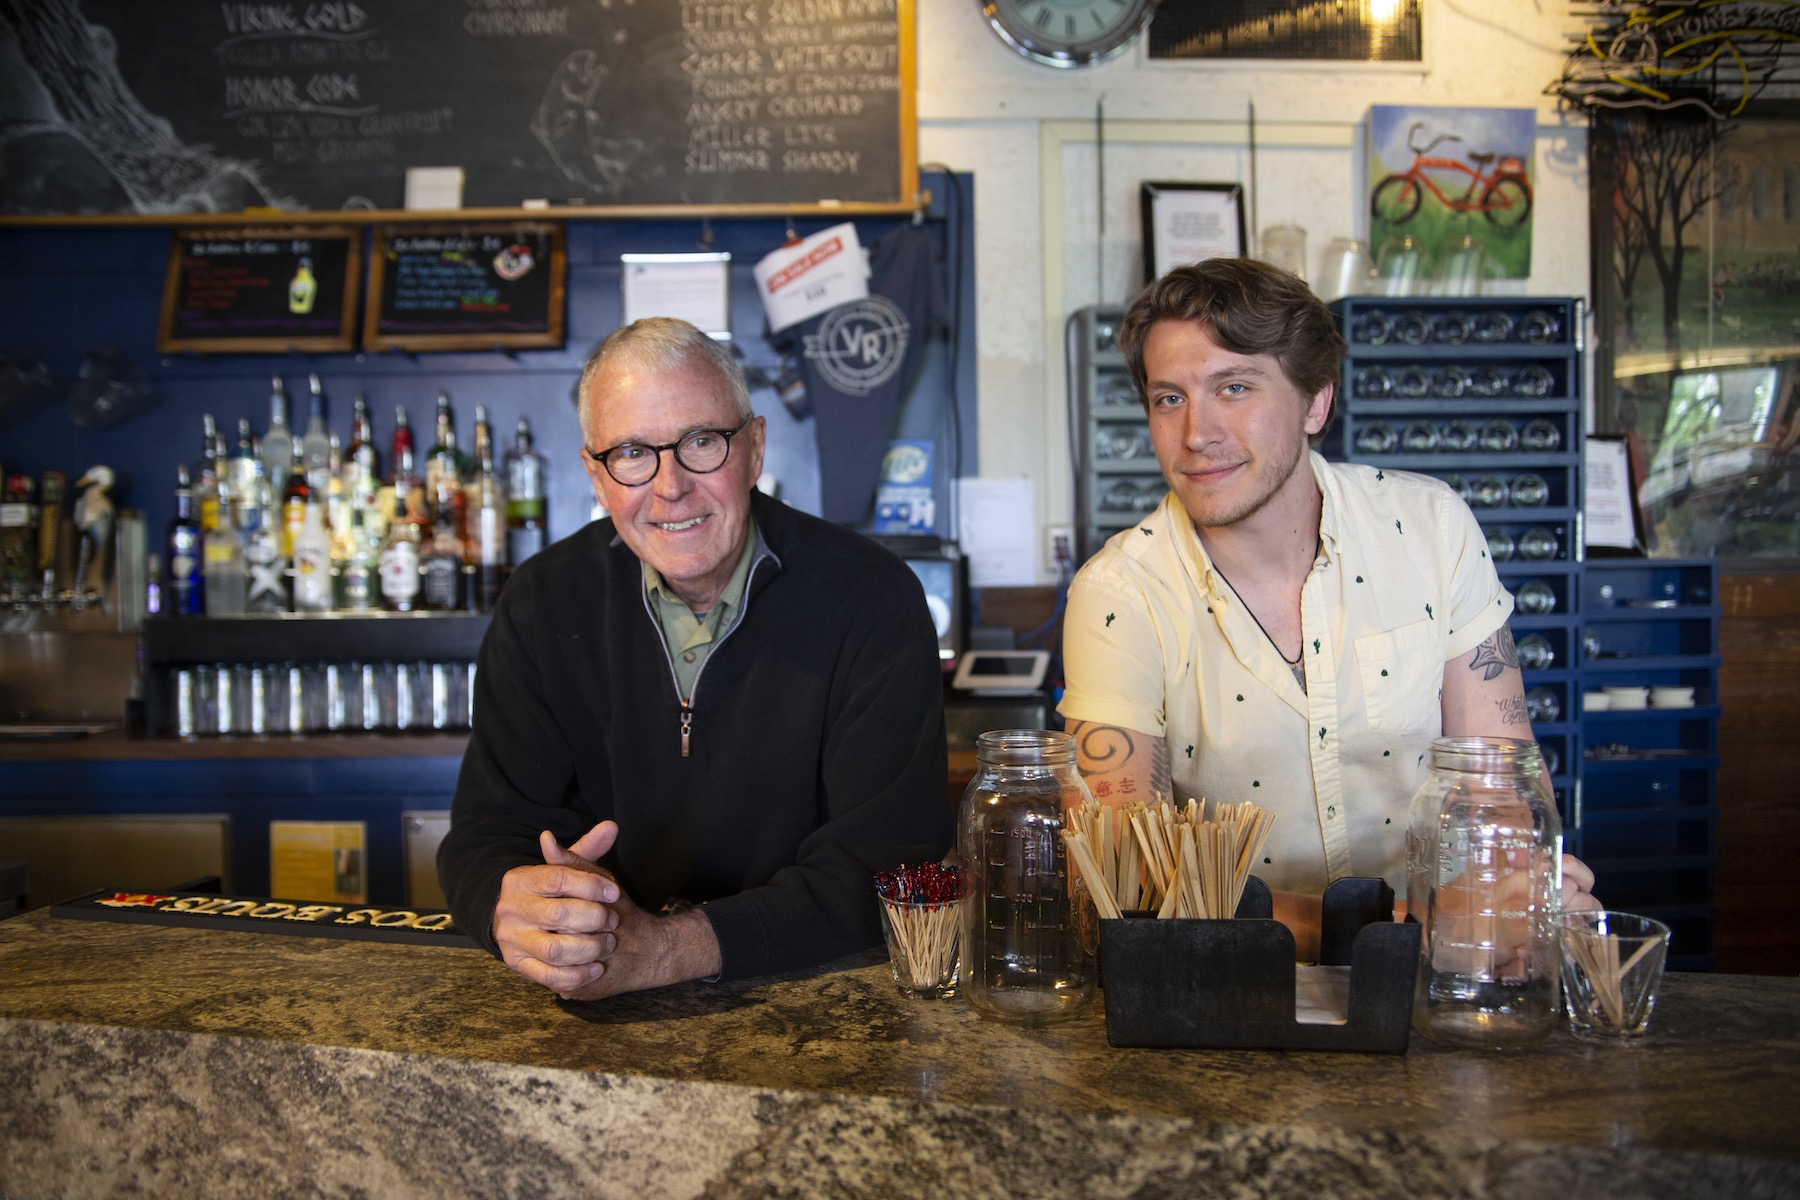 Mark Catron '69, a student bartender when the Viking Room opened as a bar in 1969, stands behind the bar with Jake Yingling '20 during Reunion Weekend.